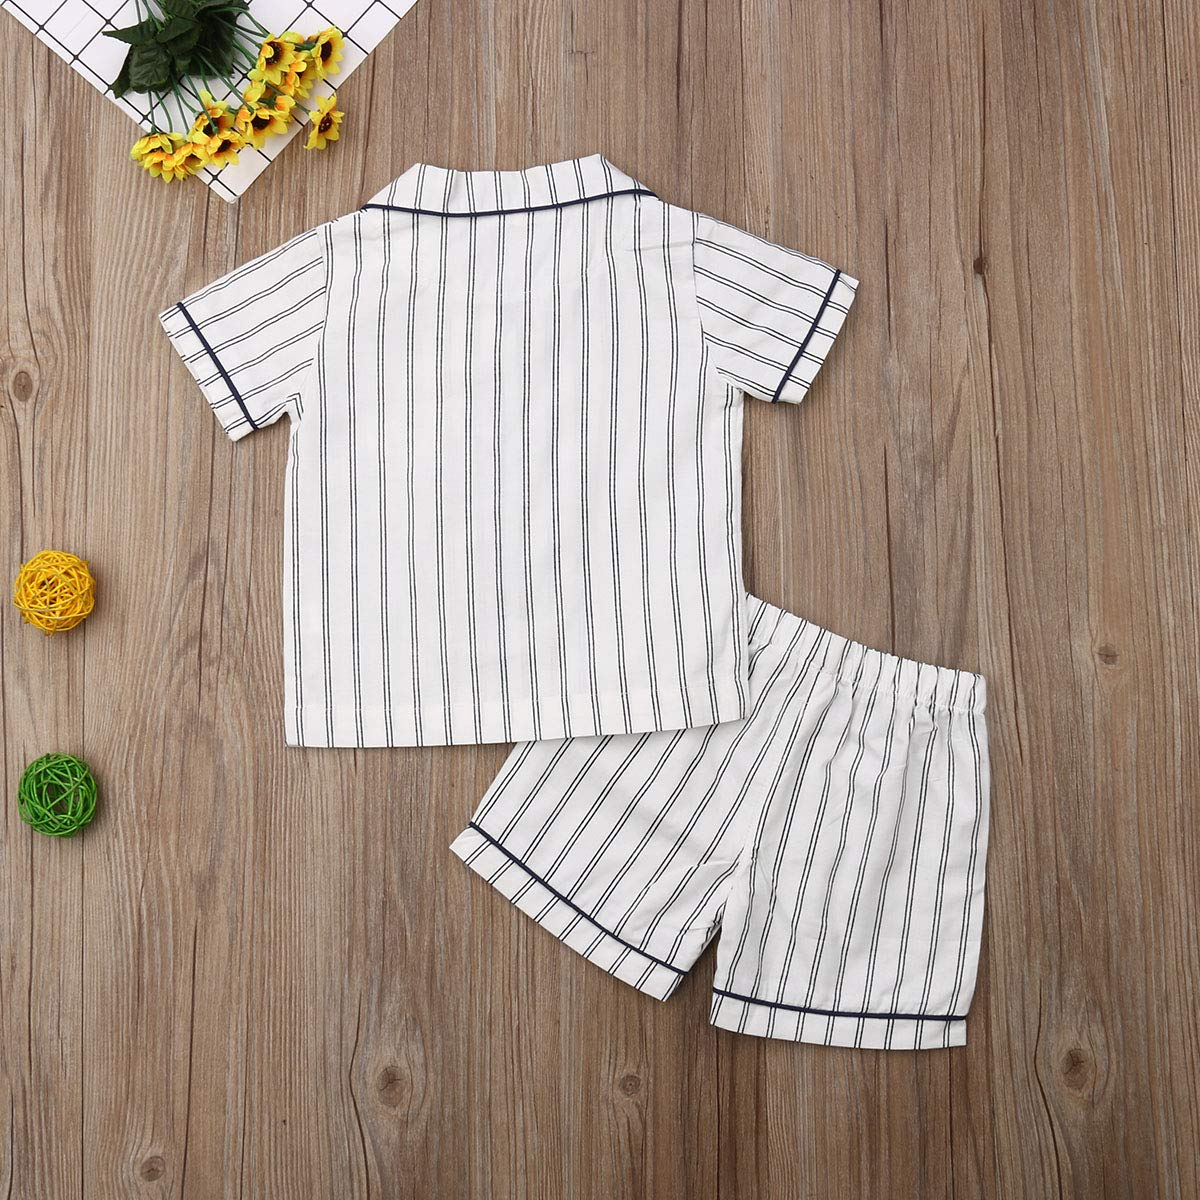 GuliriFei Little Boys Short Pajamas Sets Summer Sleepwears Toddler Kids Striped Short Pjs Sets